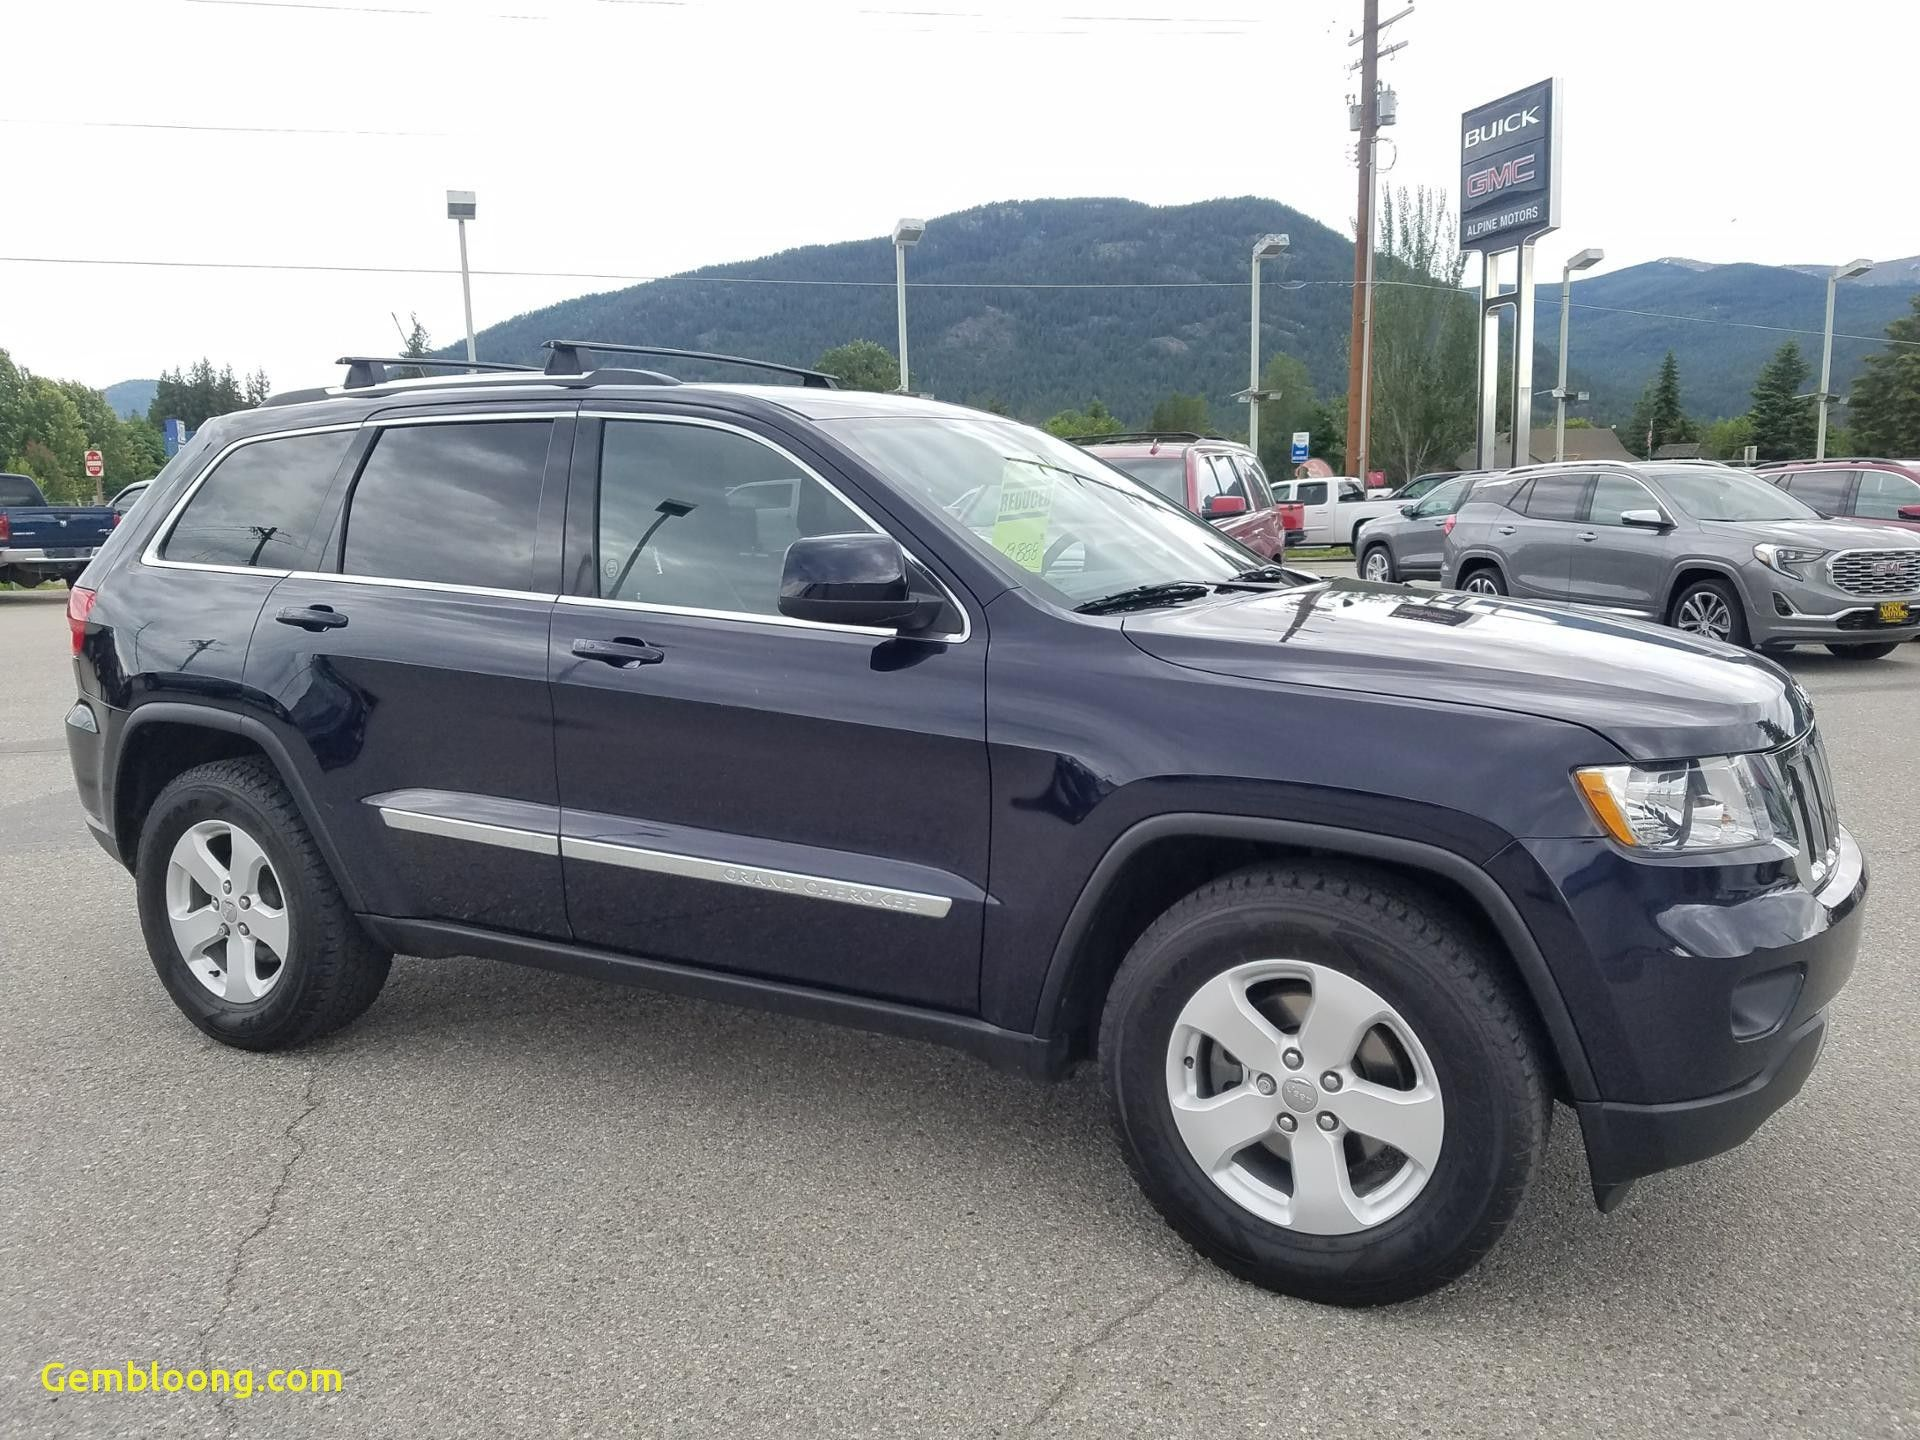 Used Economy Cars for Sale Near Me Unique Cars for Sale Near Me Low Mileage Awesome Ponderay Used Vehicles for